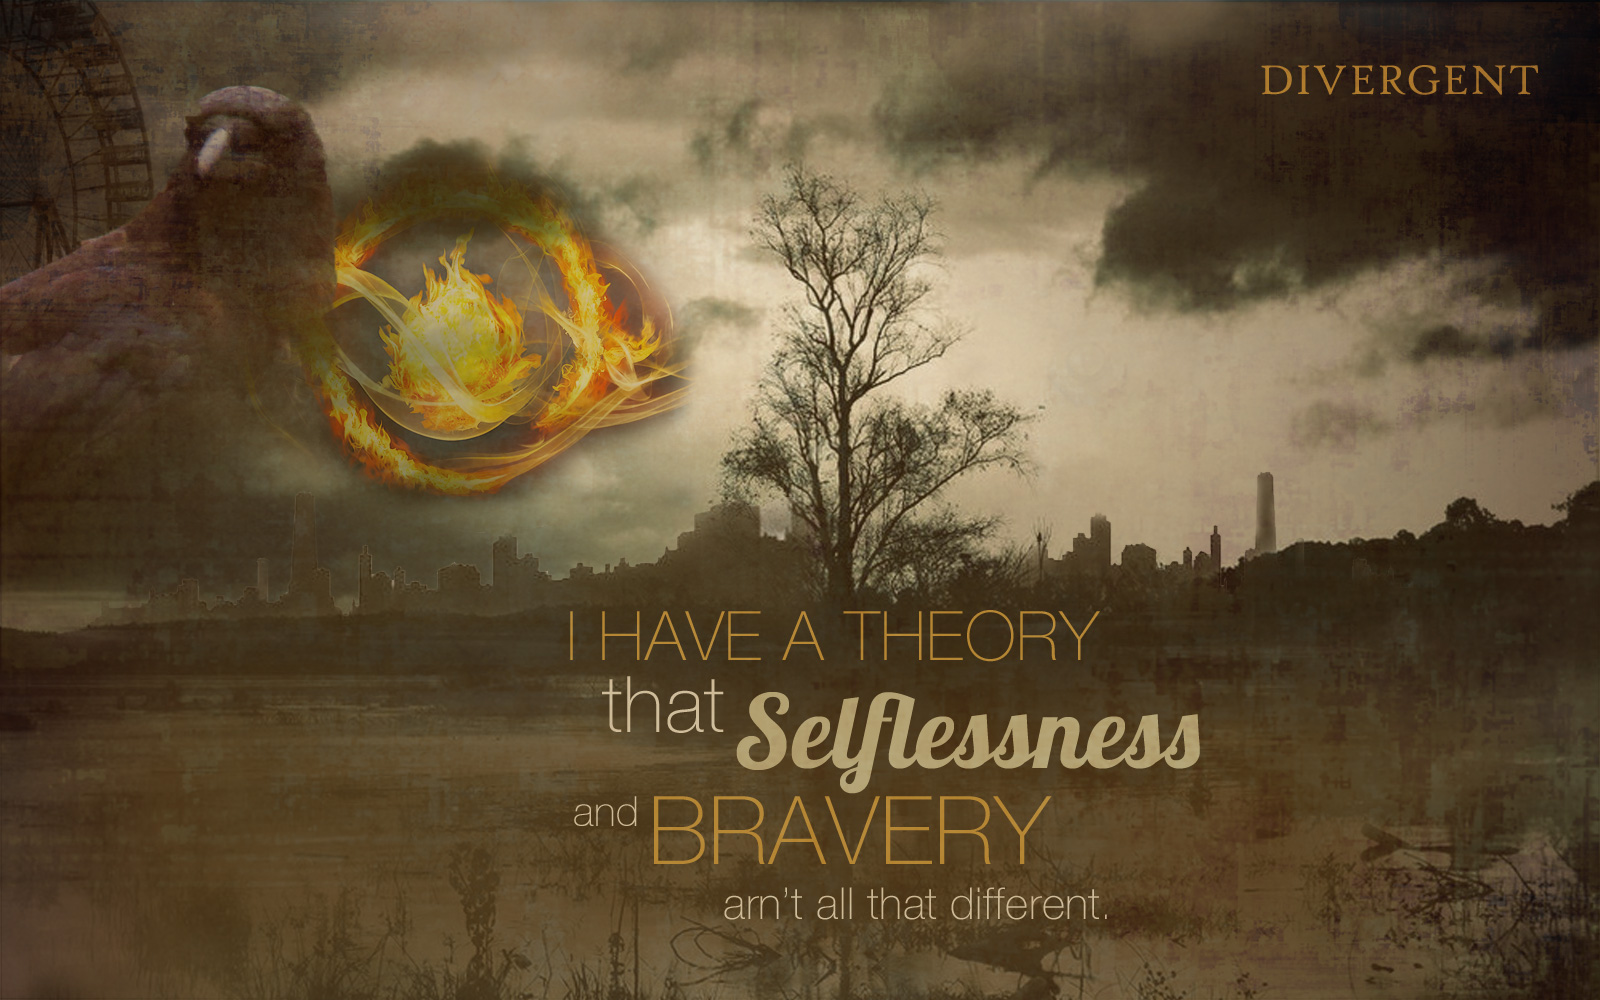 Divergent series divergent wallpapers